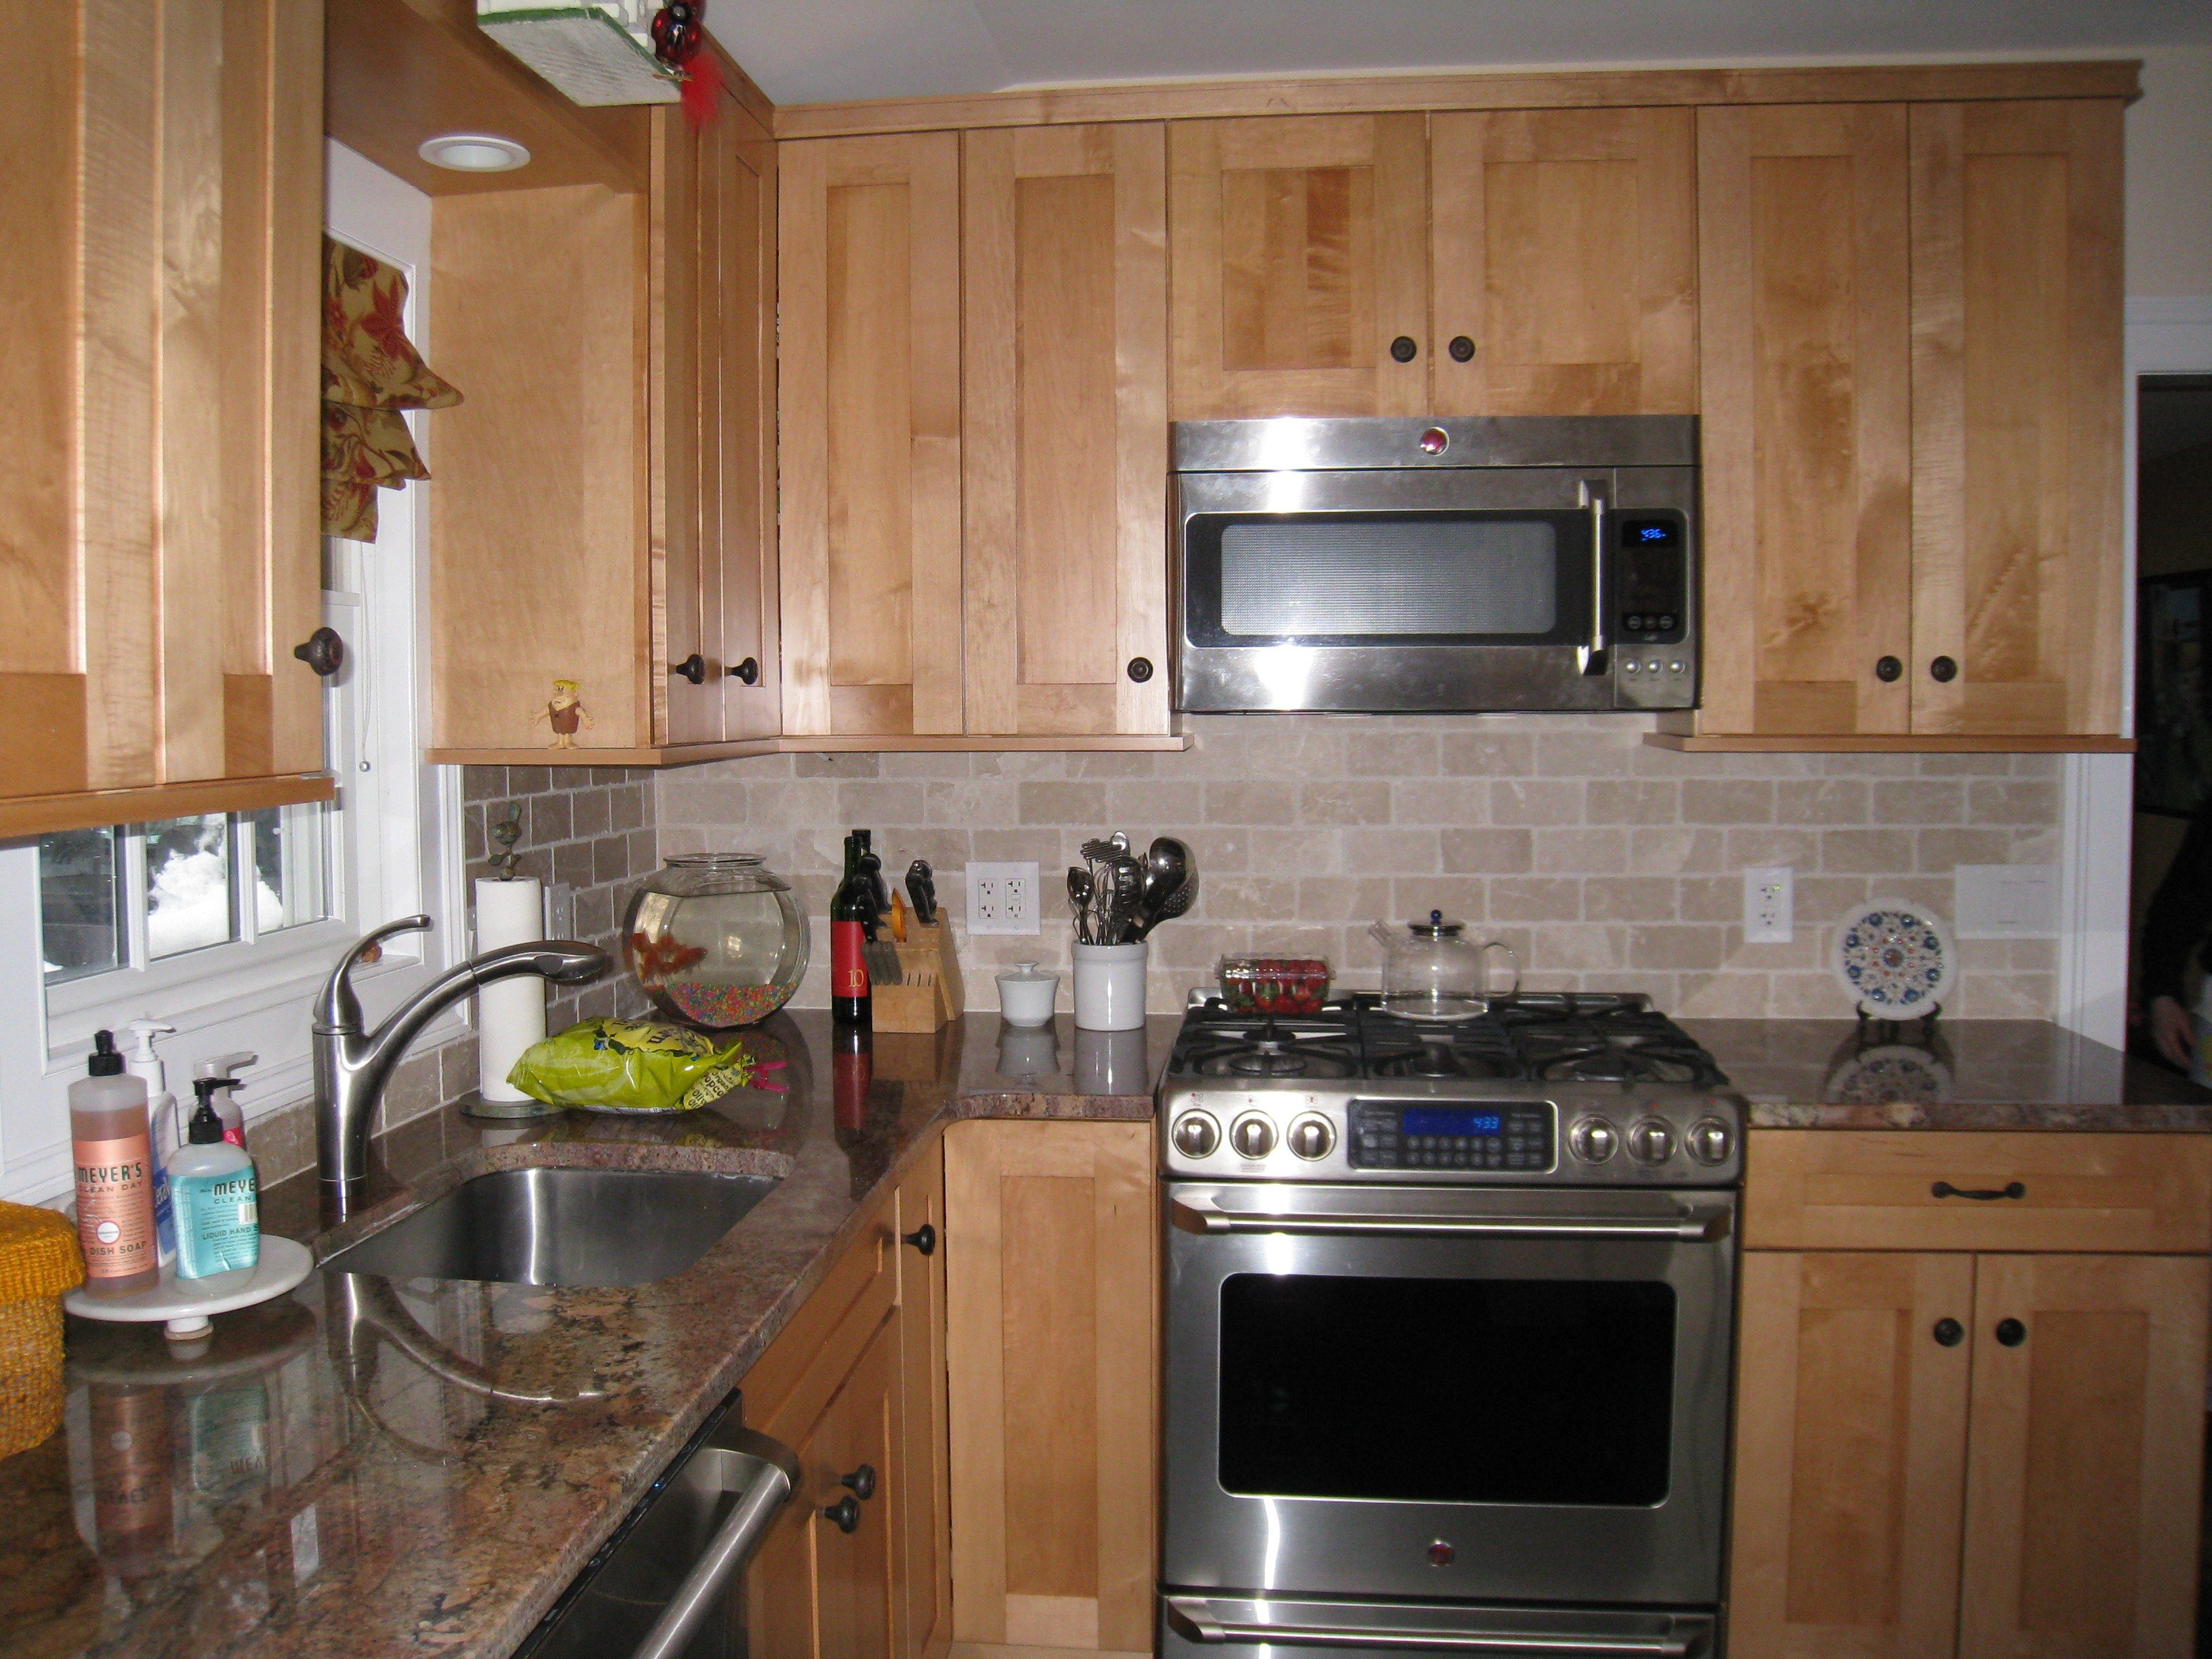 Maple Kitchen Cabinets With Marble Countertops Craftsman Style Maple Cabinets With Craftsman Style Tile